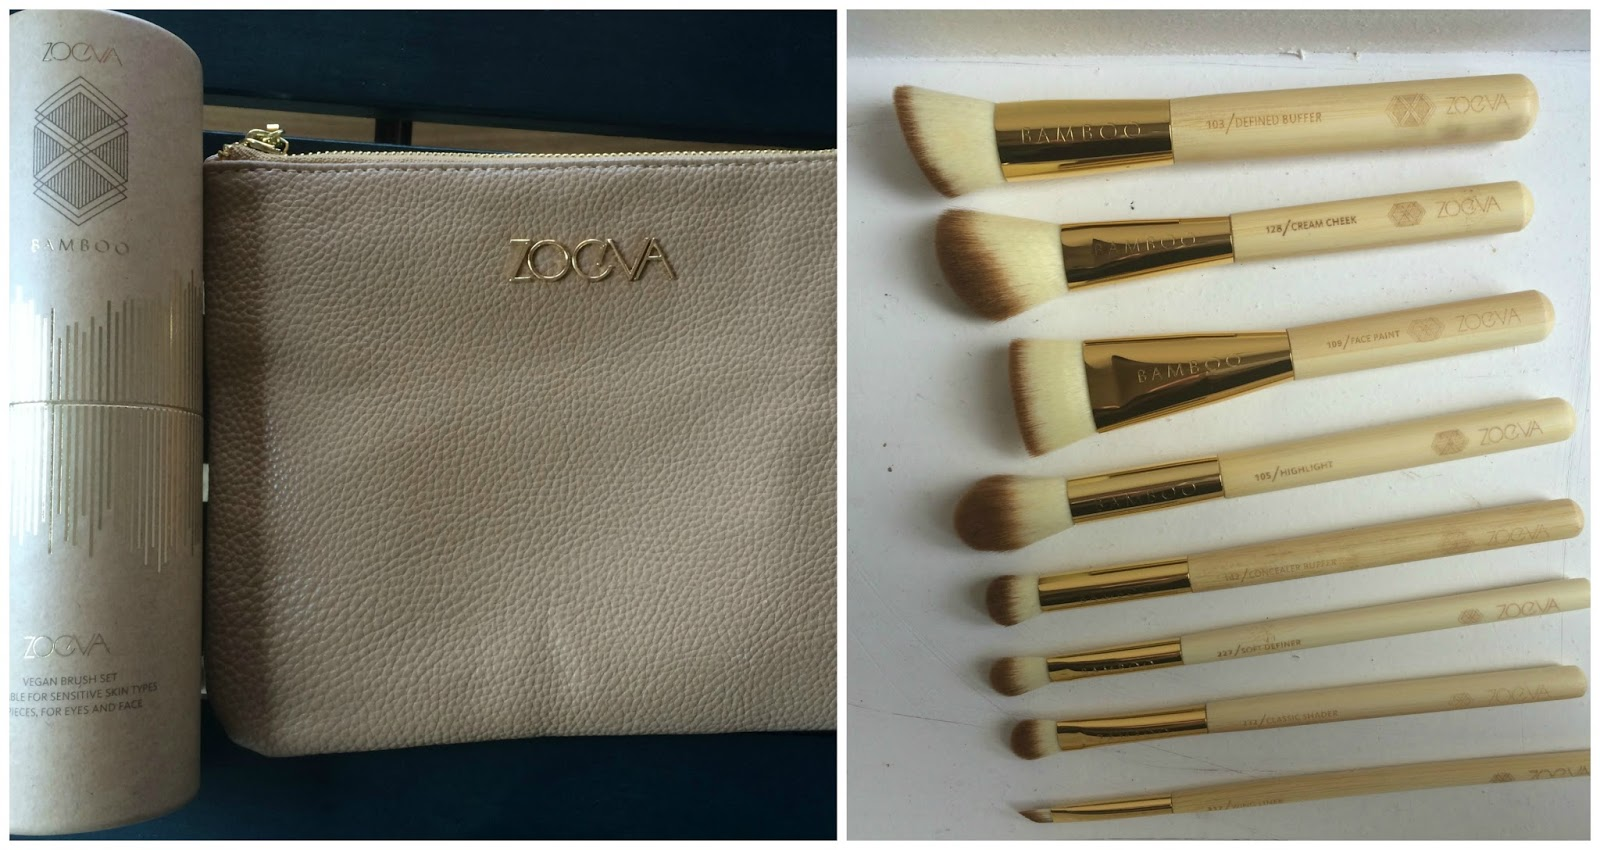 zoeva bamboo vol 2 pouch and brushes